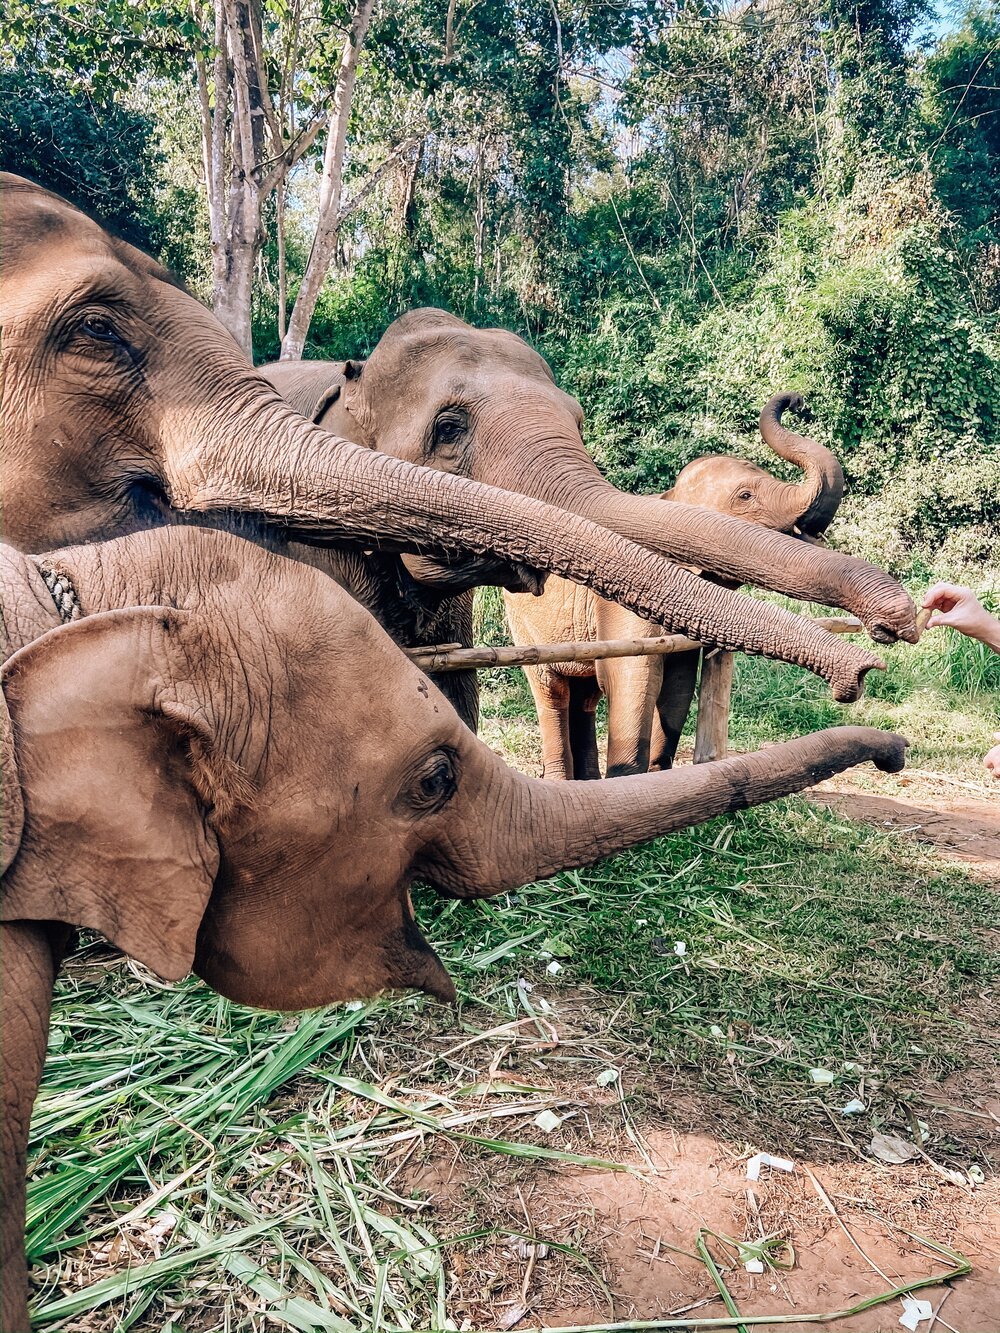 Getting to Chai Lai Orchid elephant sanctuary in Thailand